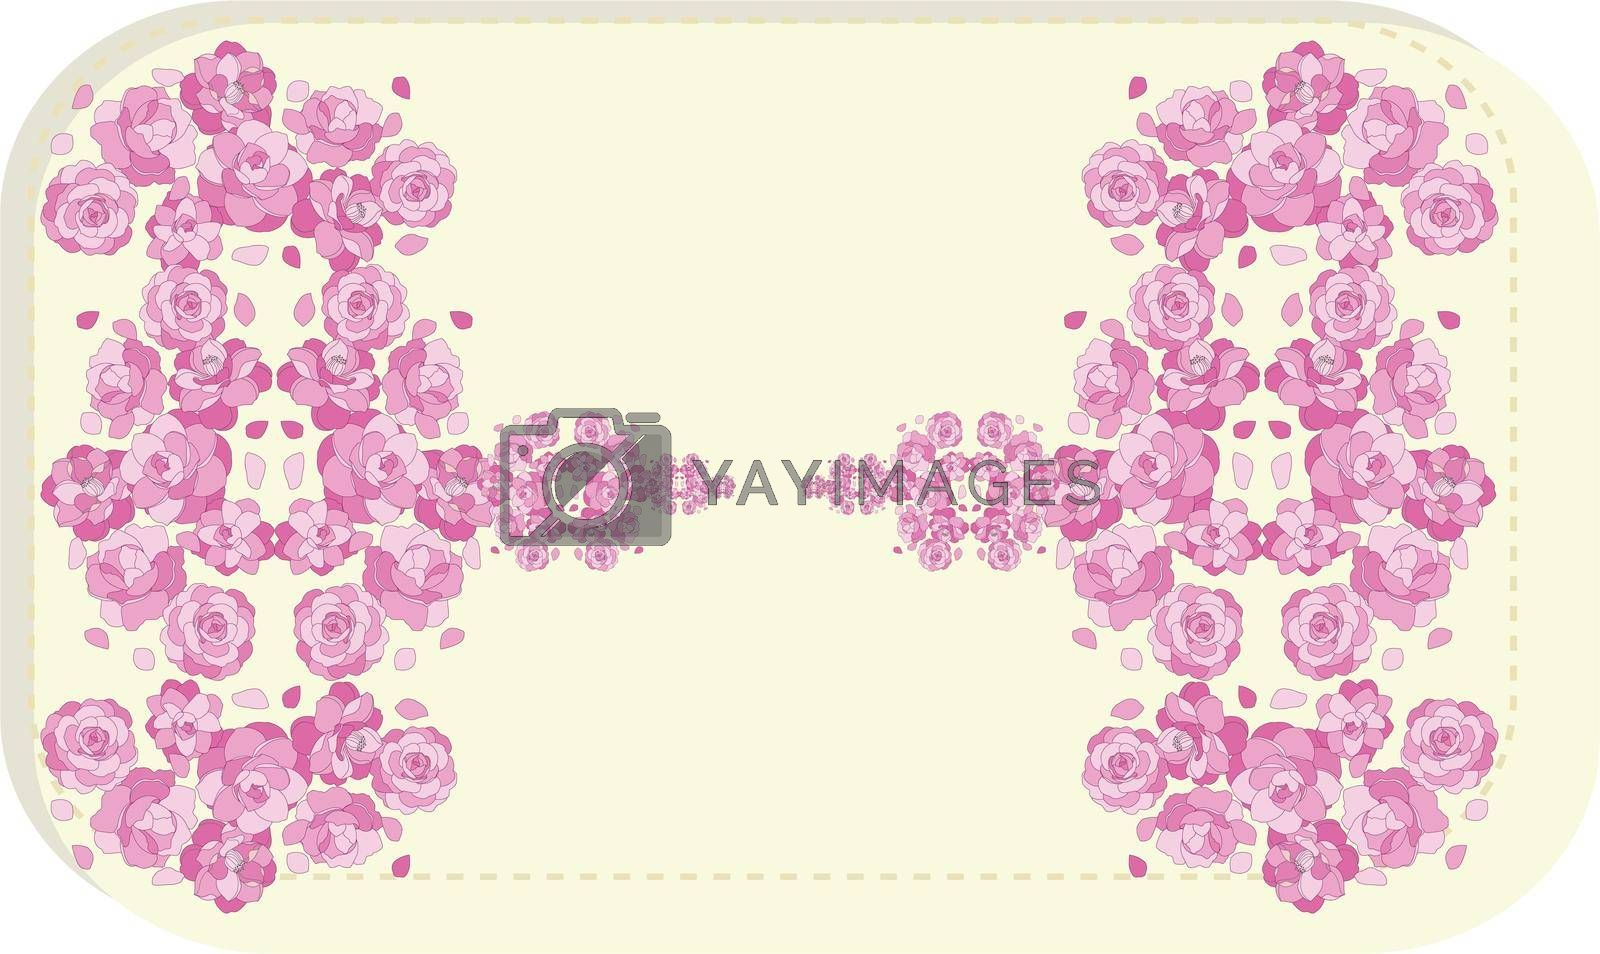 Bed of red roses on abstract background